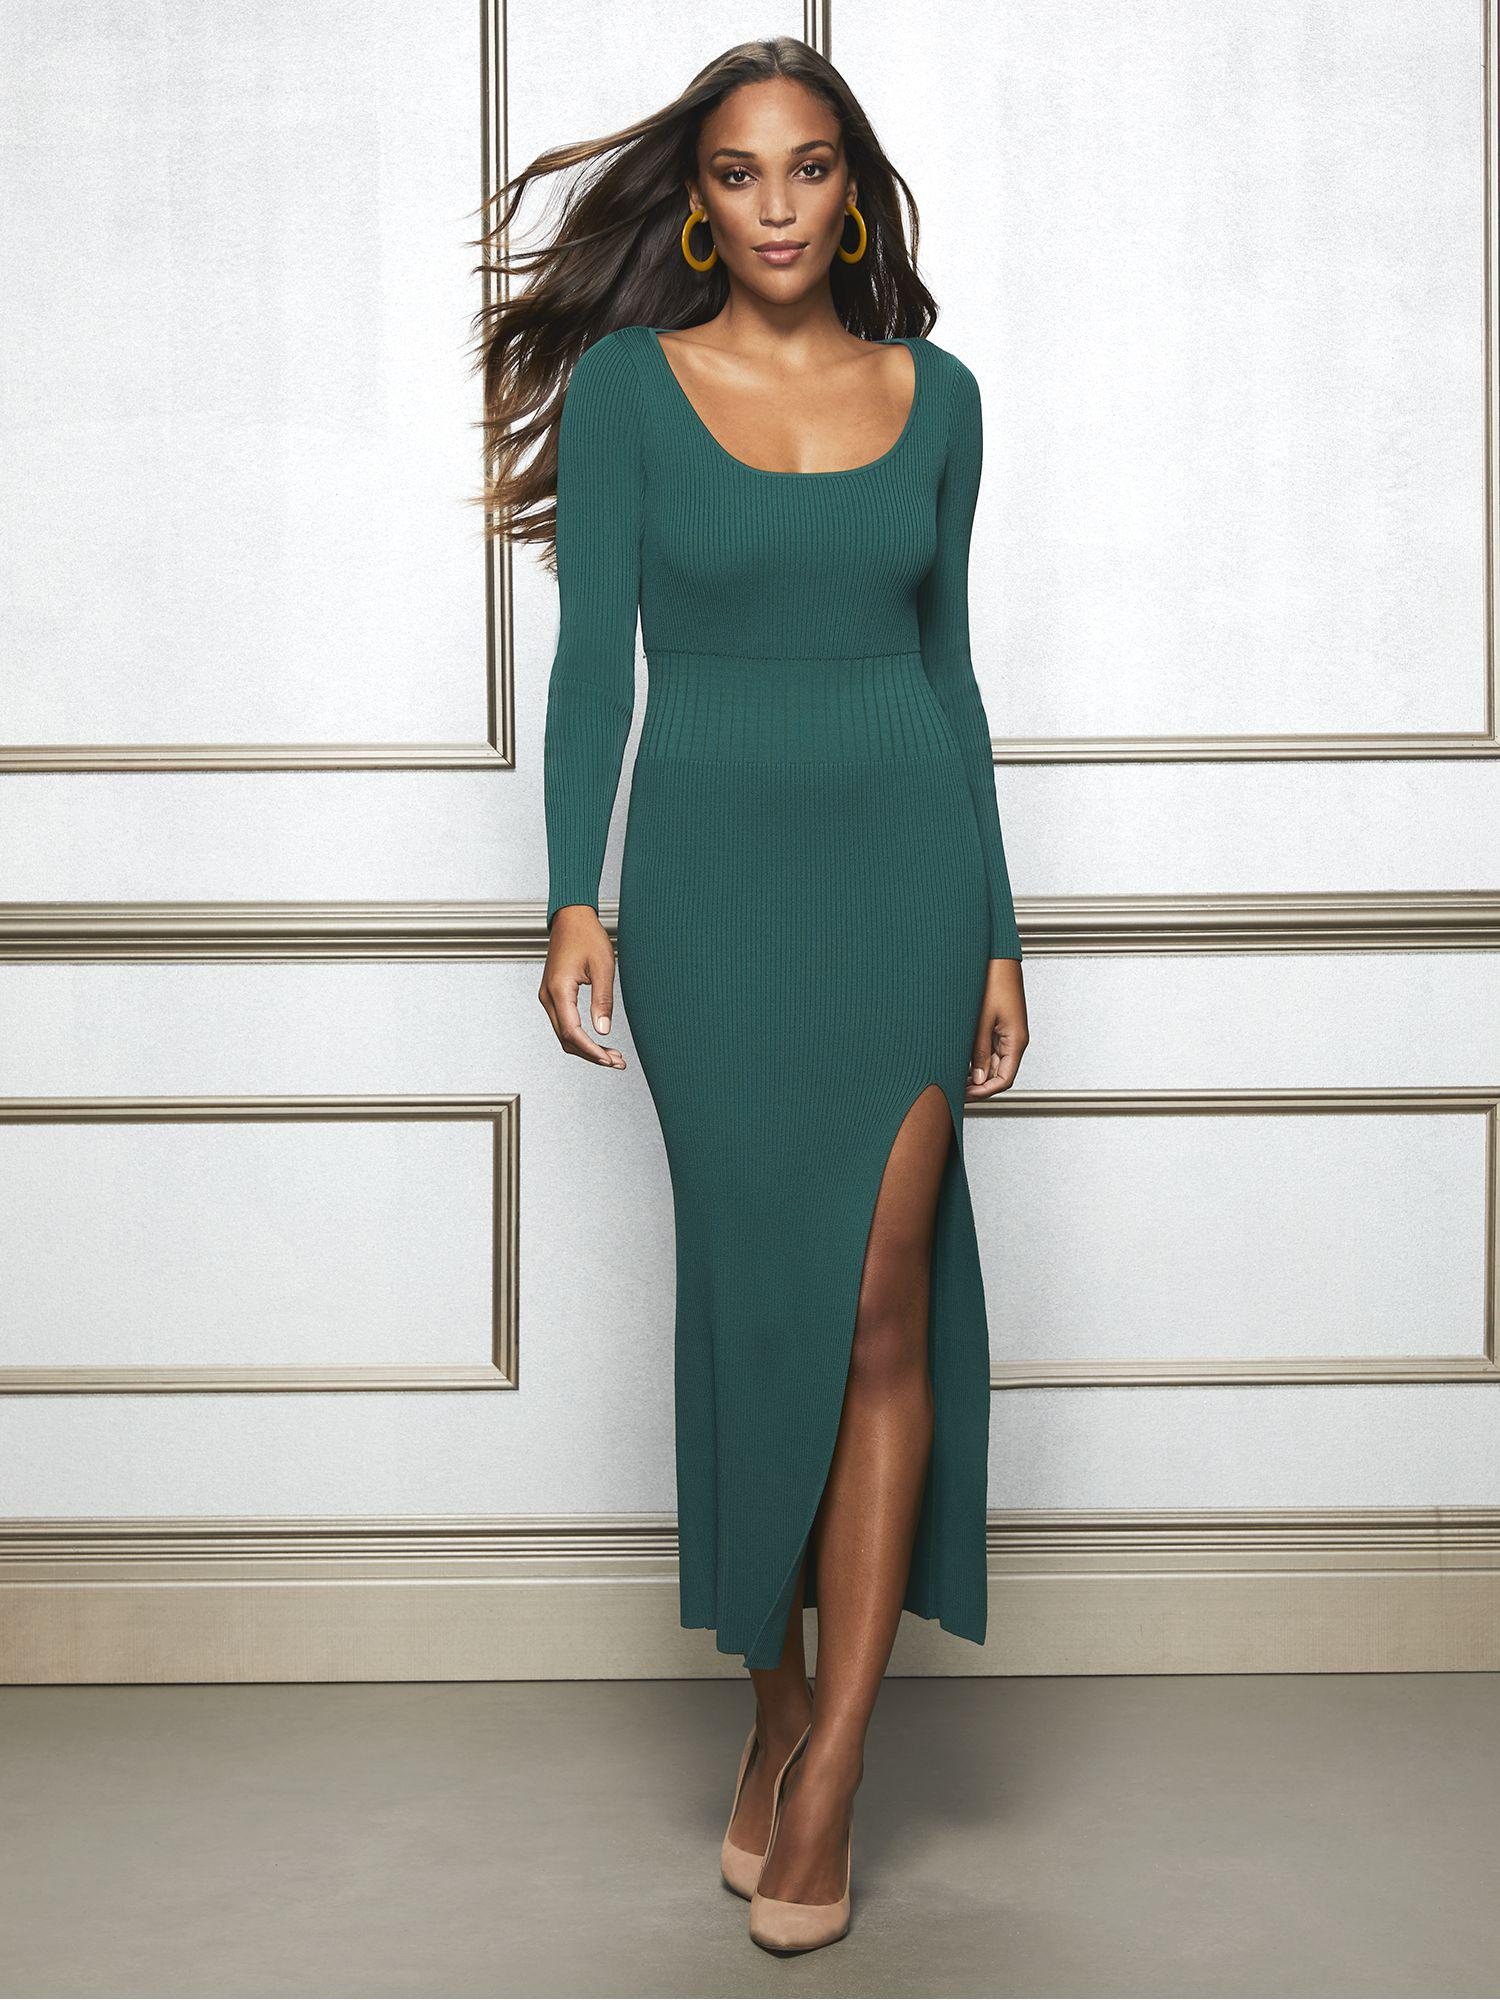 80ae37b47950 New York & Company. Women's Green Eva Mendes Collection - Maxine Sweater  Dress